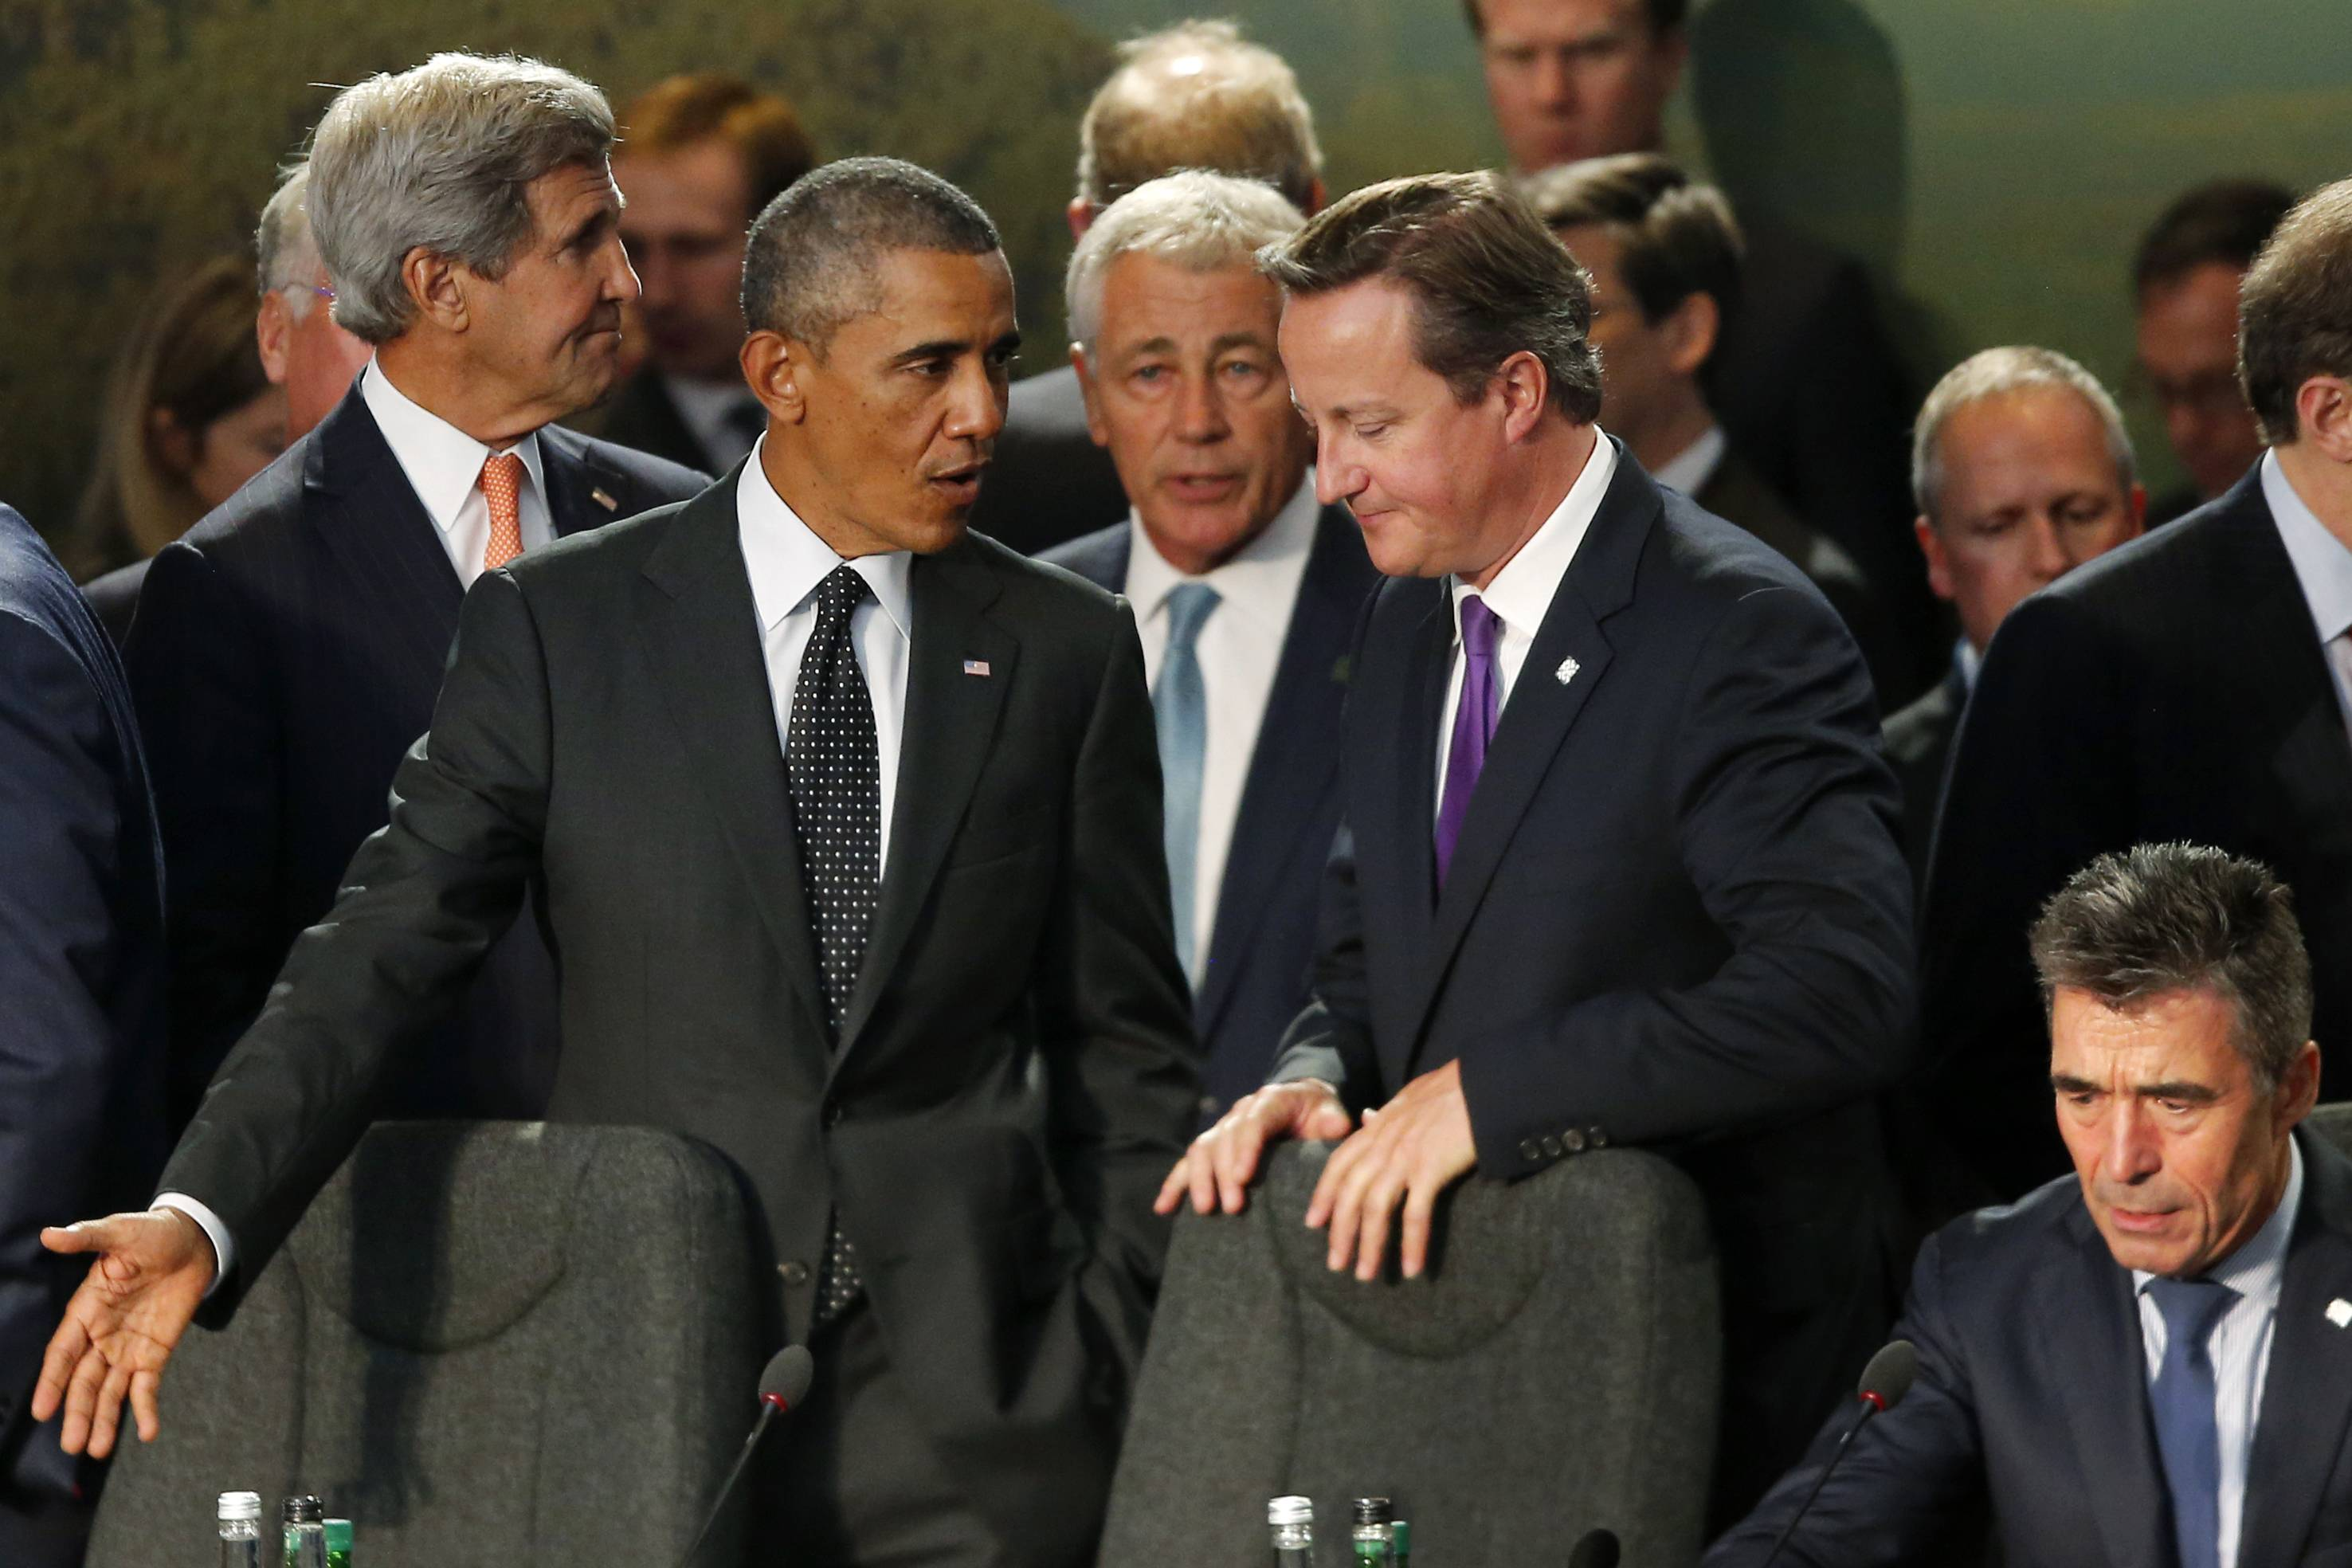 President Barack Obama speaks Thursday with British Prime Minister David Cameron as NATO leaders meet regarding Afghanistan at the NATO summit at Celtic Manor in Newport, Wale From left are, Secretary of State John Kerry, the president, Defense Secretary Chuck Hagel and NATO Secretary-General Anders Fogh Rasmussen.